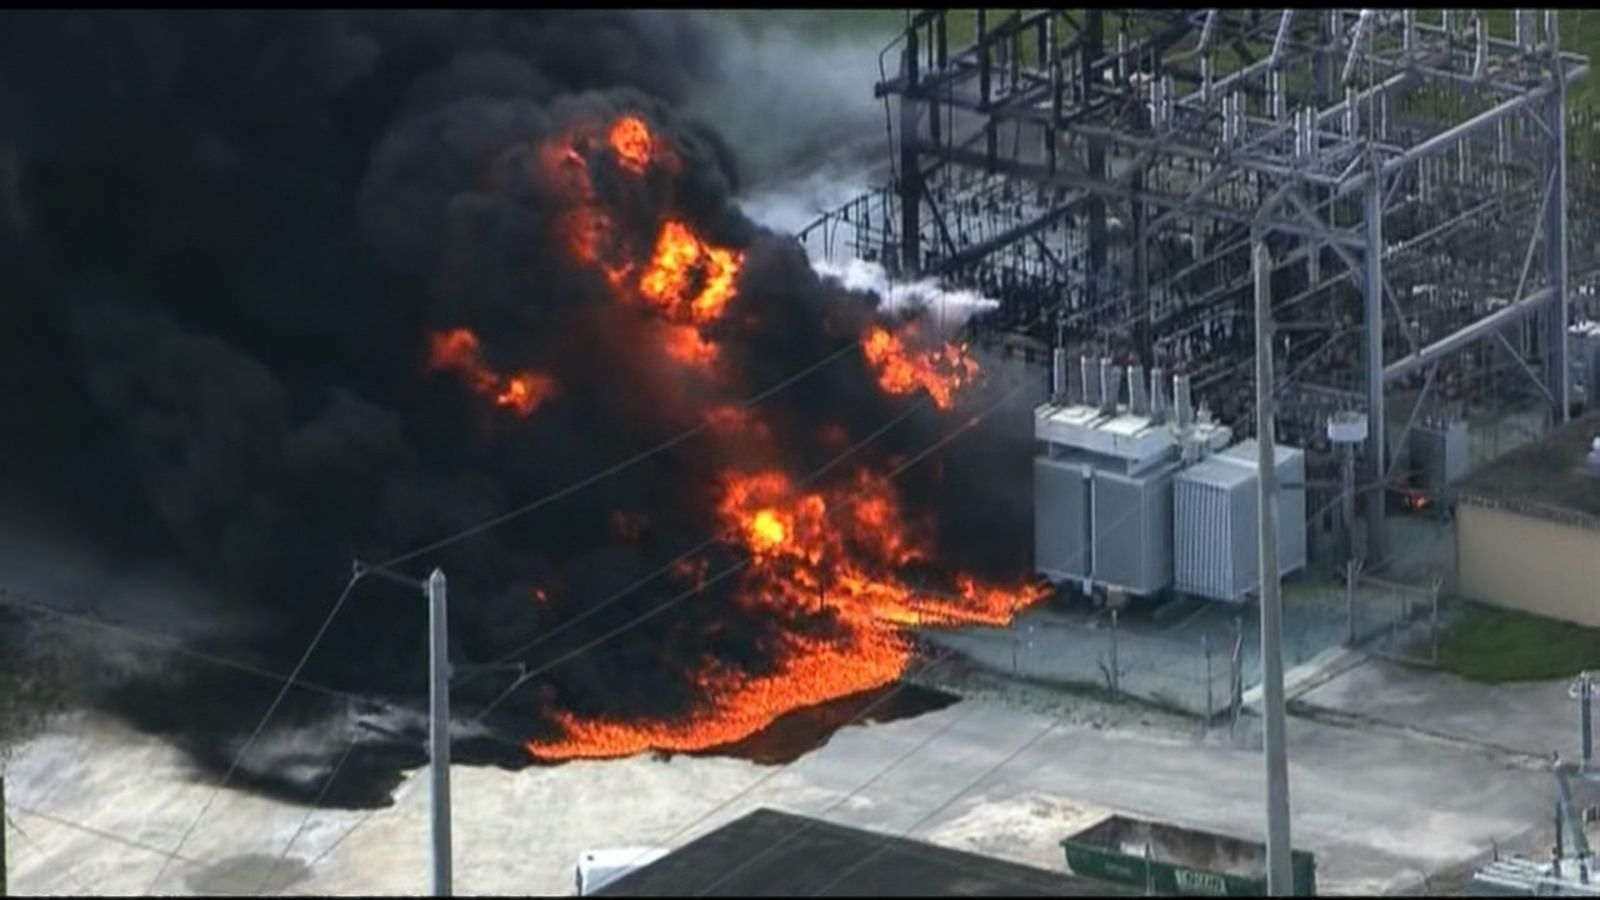 VIDEO: Index: Thousands in Florida Without Power Following a Power Plant Explosion